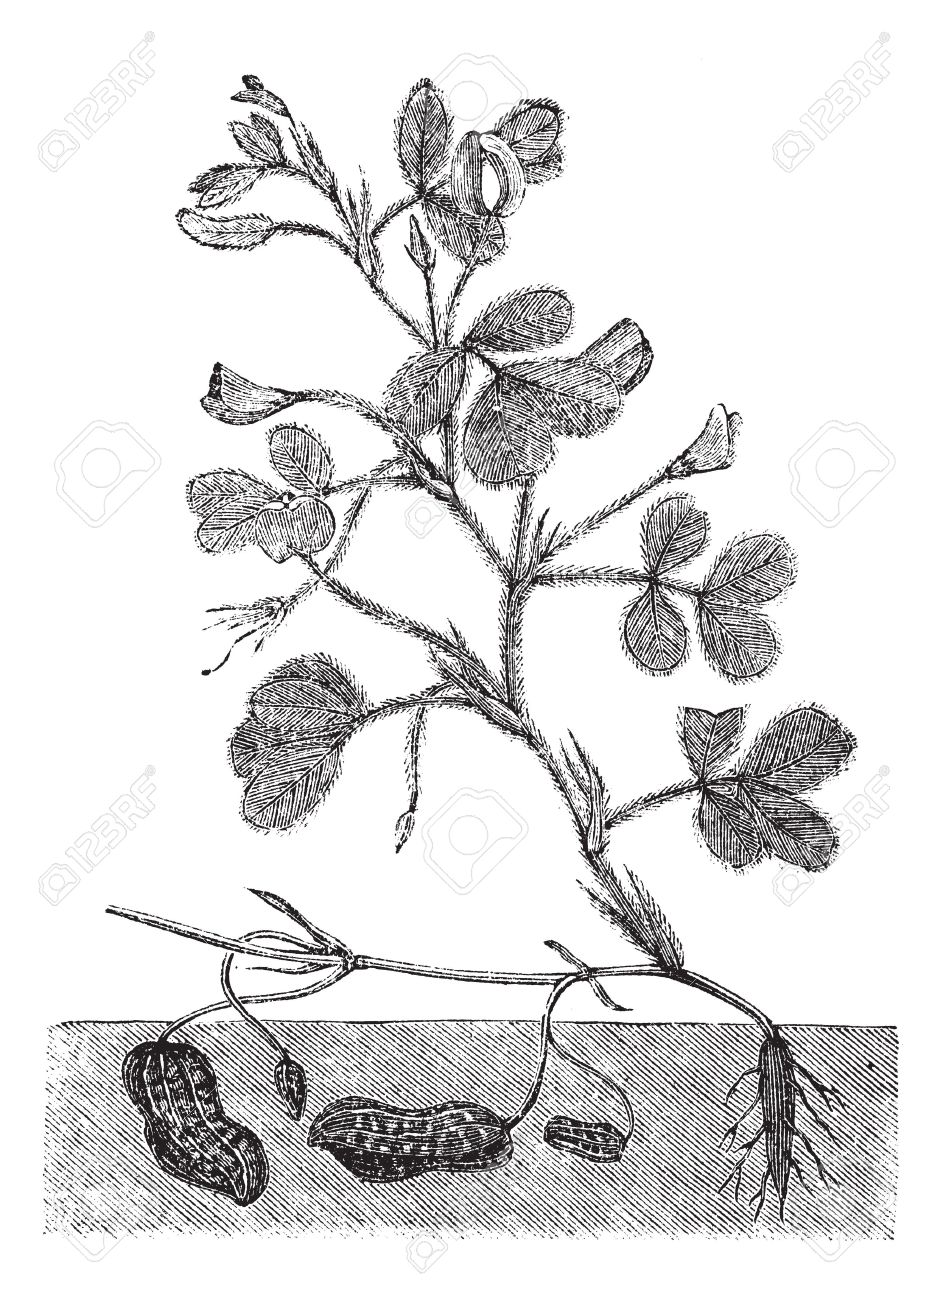 Peanut Or Groundnut Or Arachis Hypogea Vintage Engraving. Old.